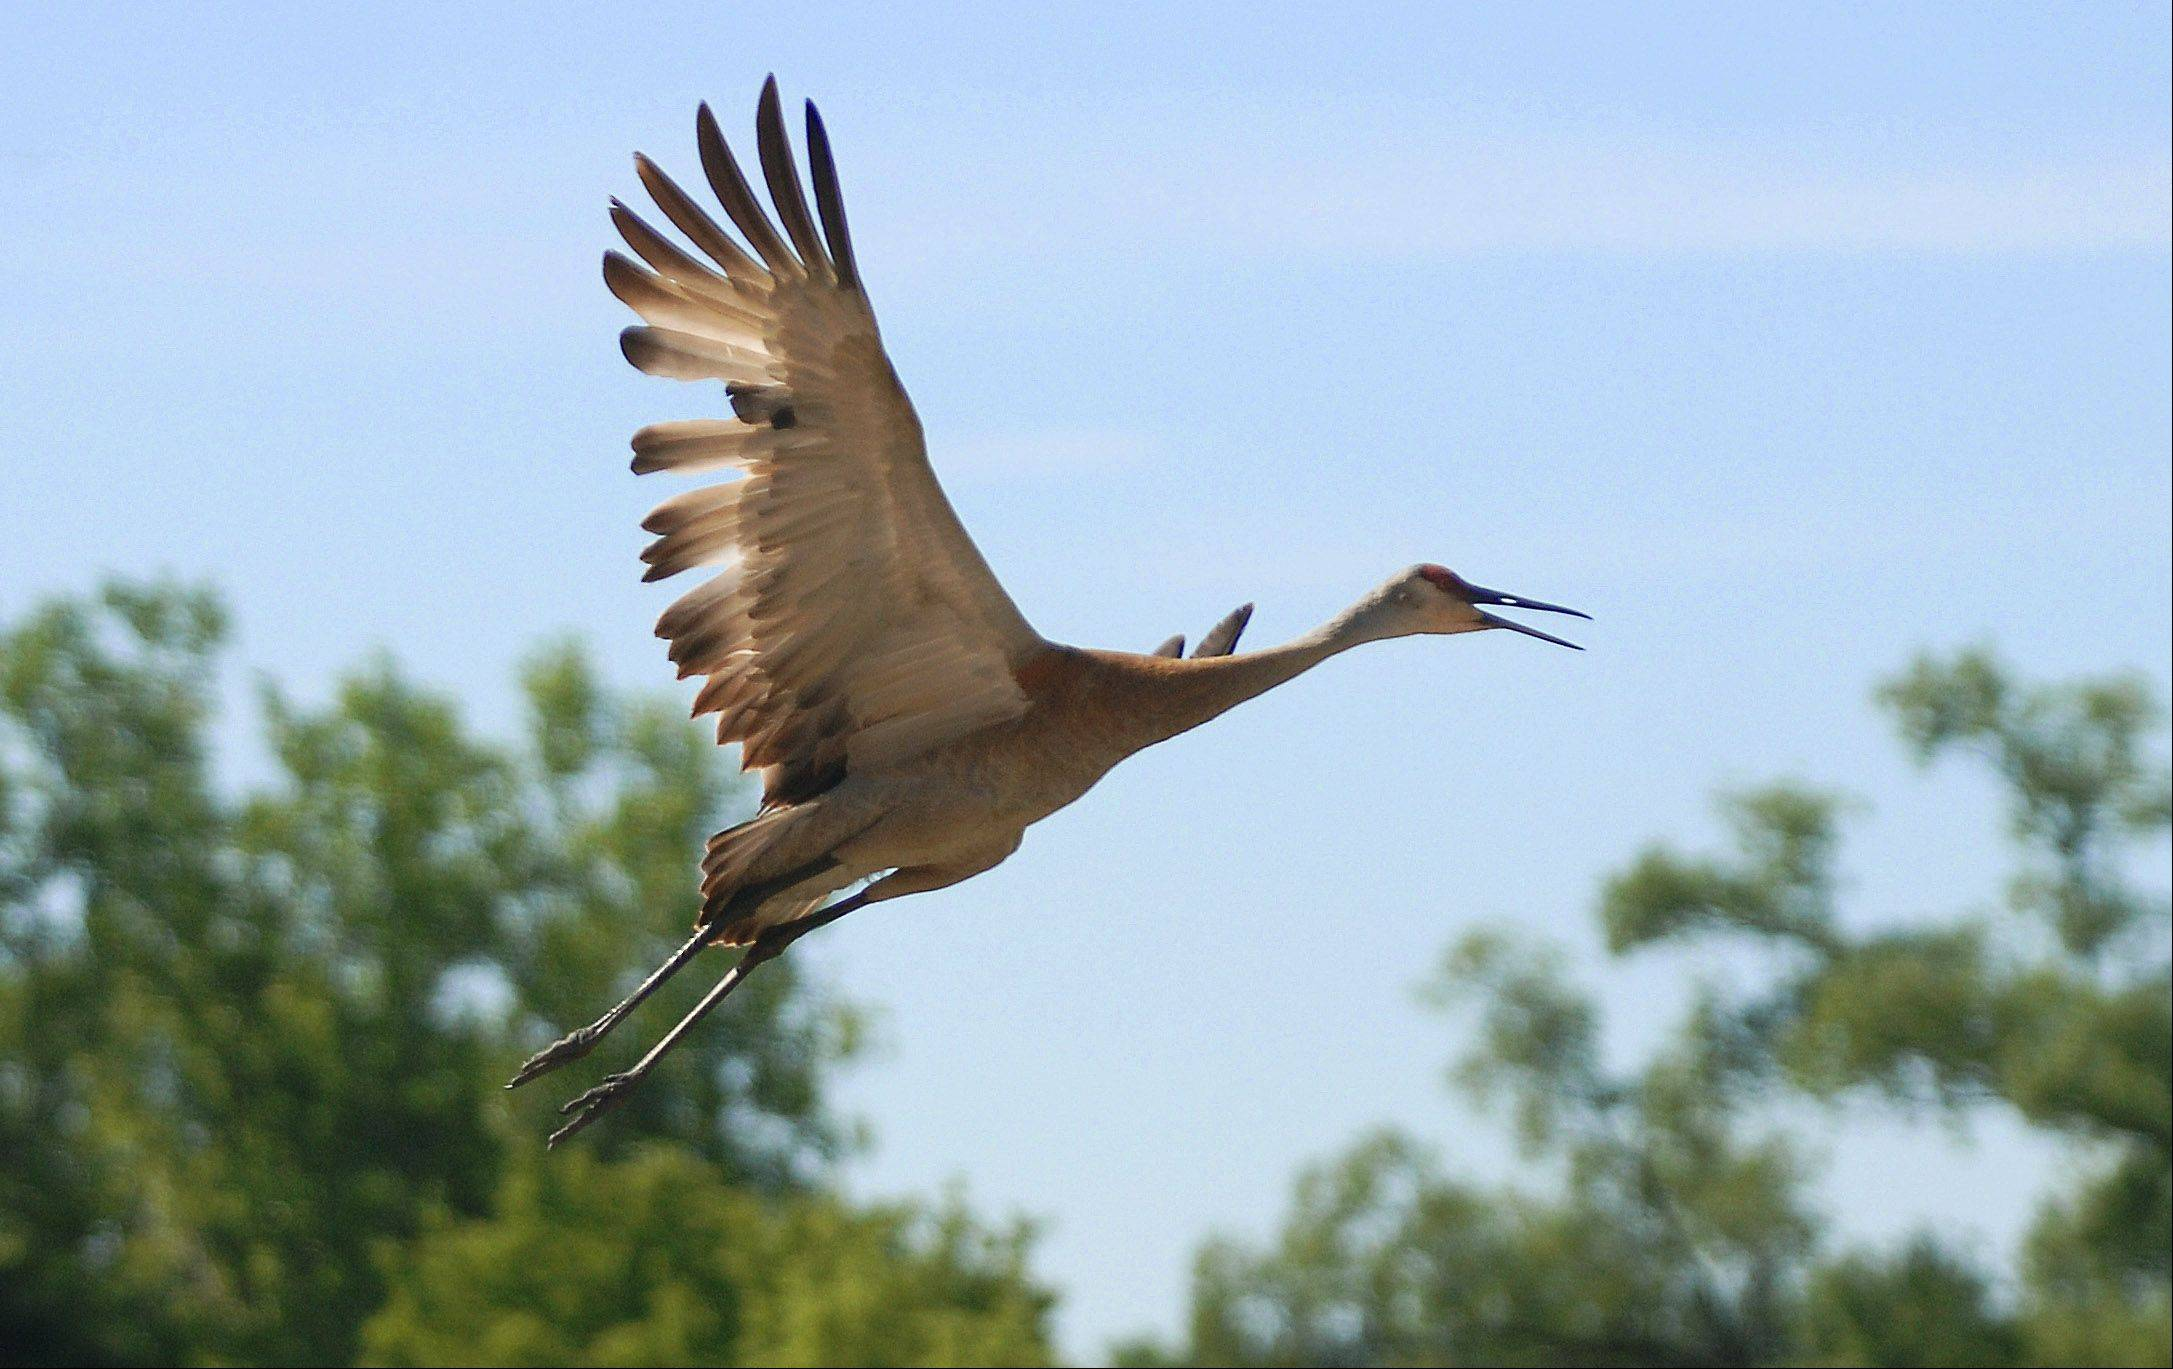 A sandhill crane takes flight to keep up with it's mate north of the Marl Flat Forest Preserve near Volo Tuesday morning. The cranes are one of the largest birds nesting in Lake County.